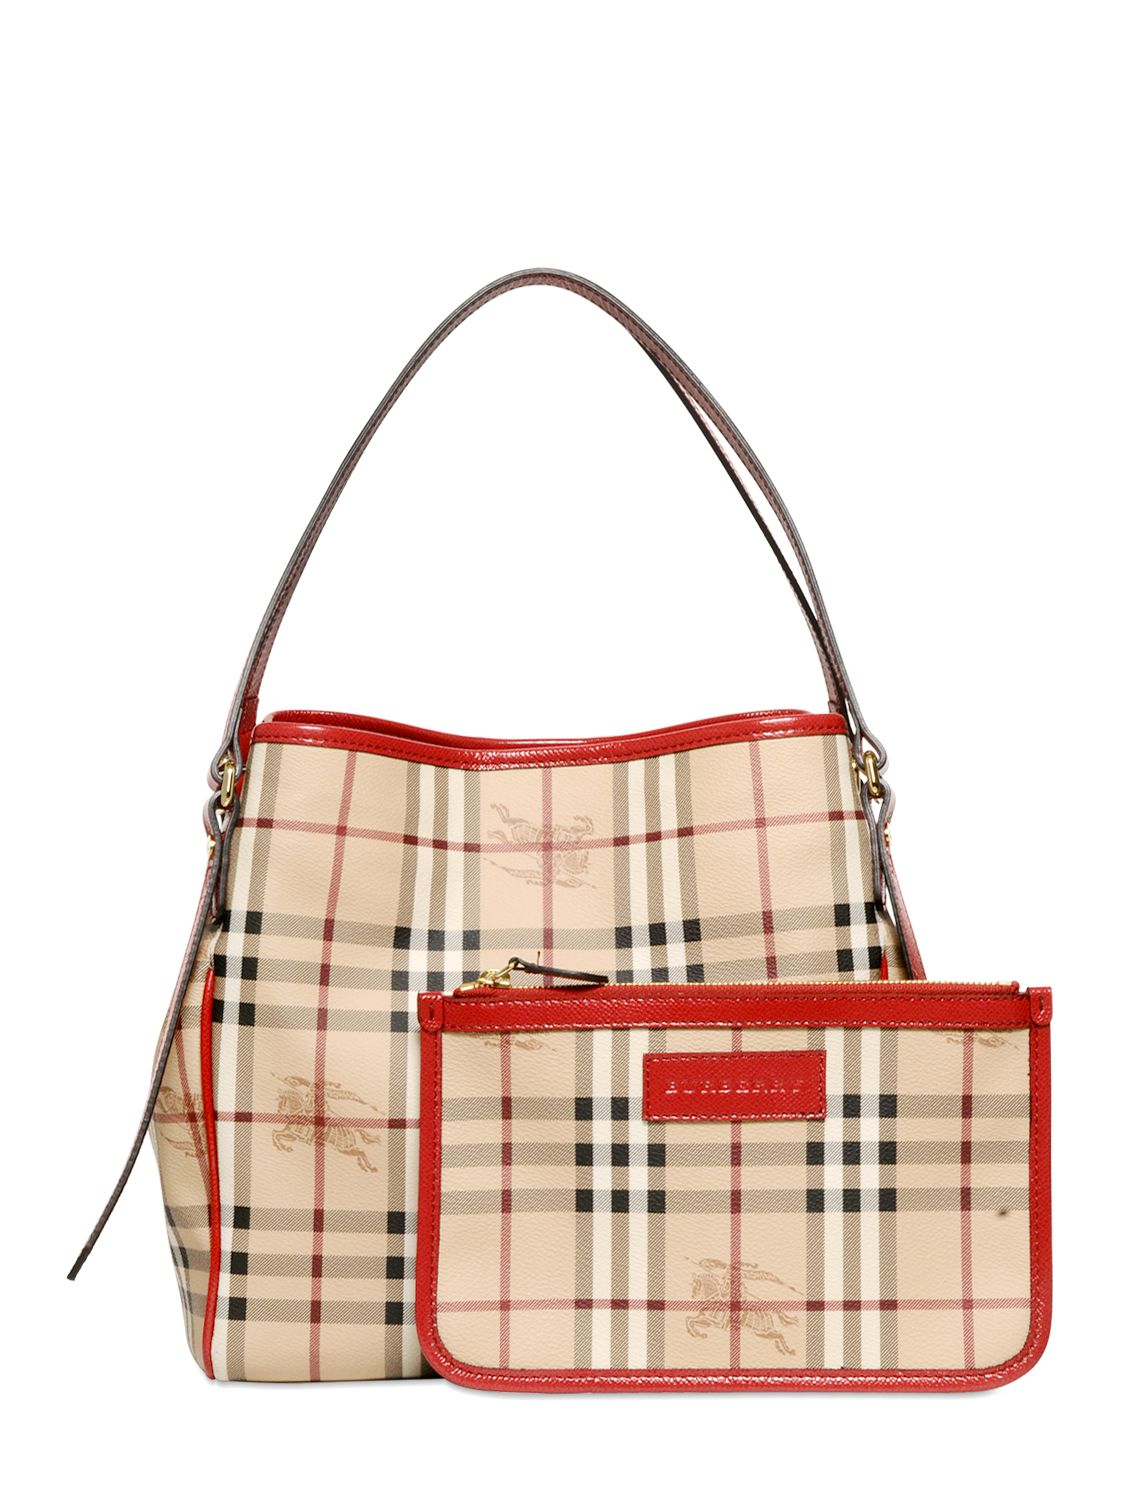 The sale is on! | Page 3 - PurseForum